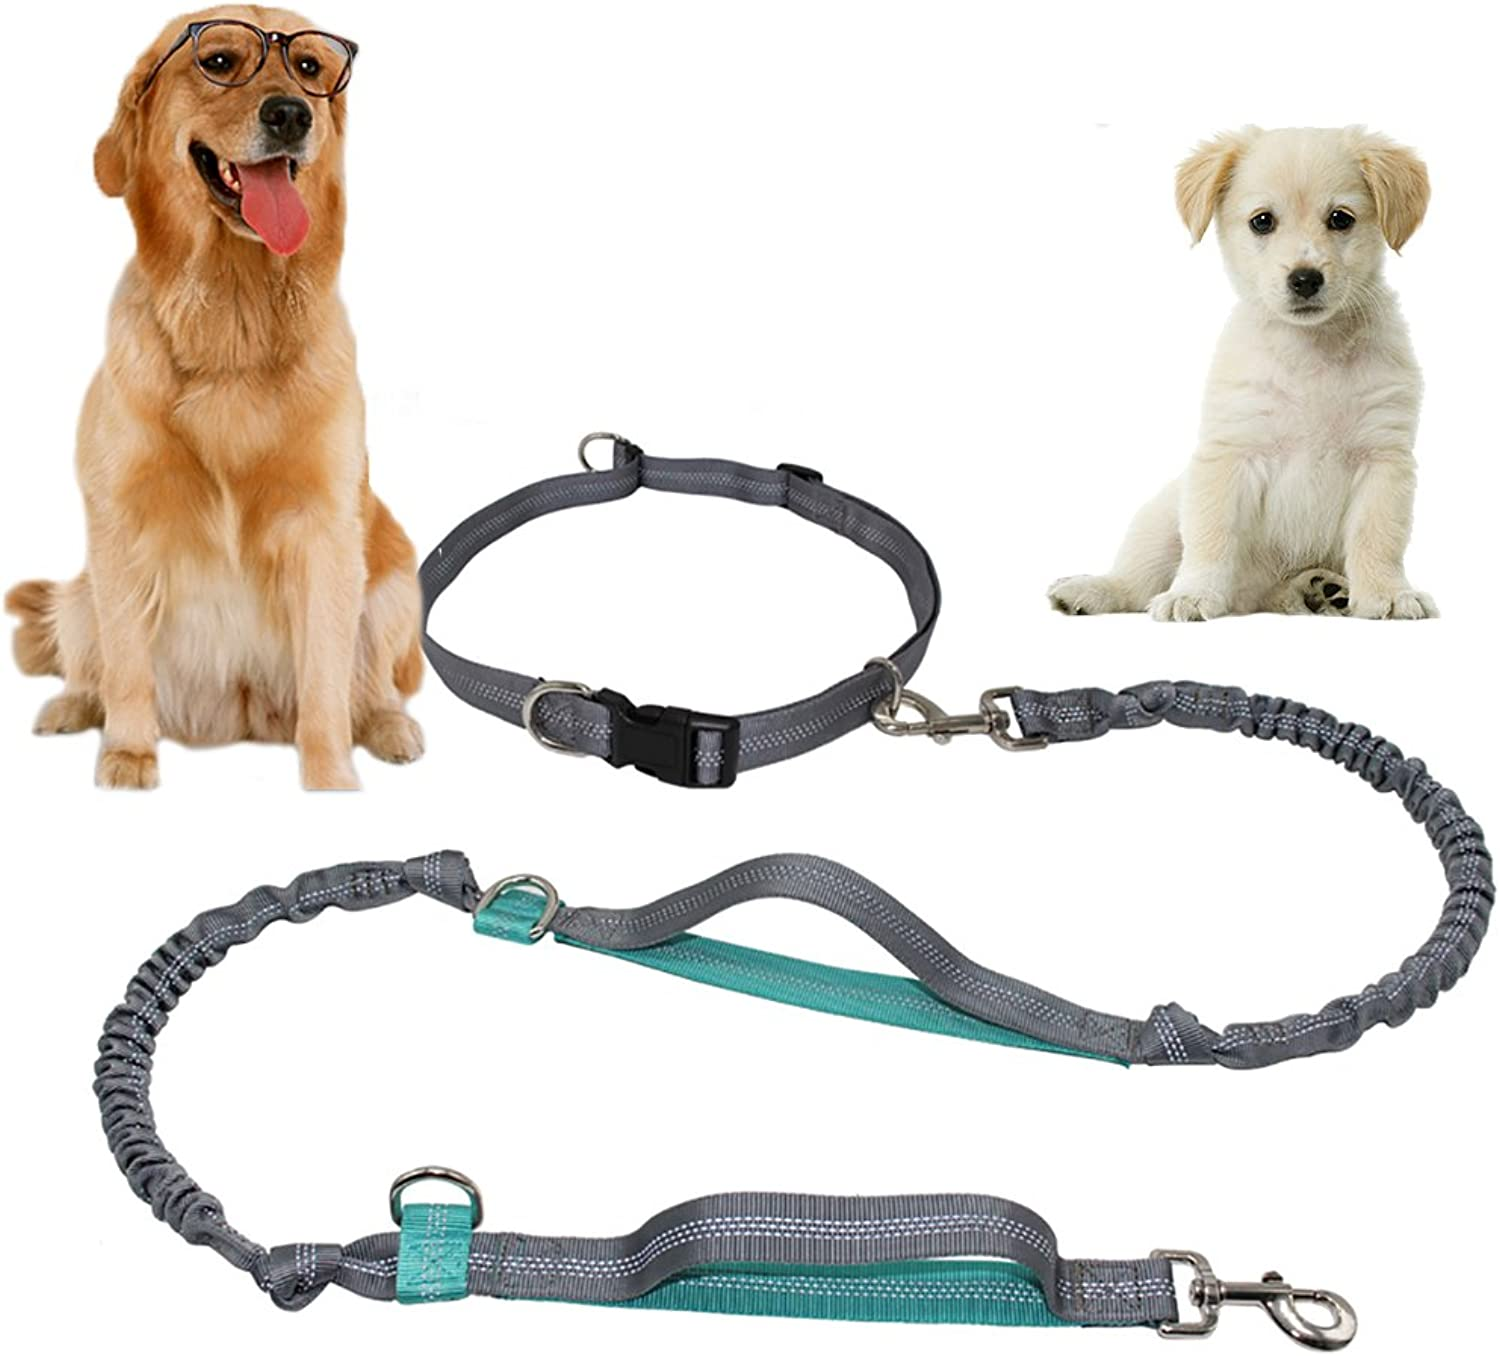 Boxing Hands Free Waist Dog Leash Double Bungees, Retractable Dog Leash Free Control Medium Large Dogs, Double Handles Leash Adjustable Waist Belt Walking Running Jogging.